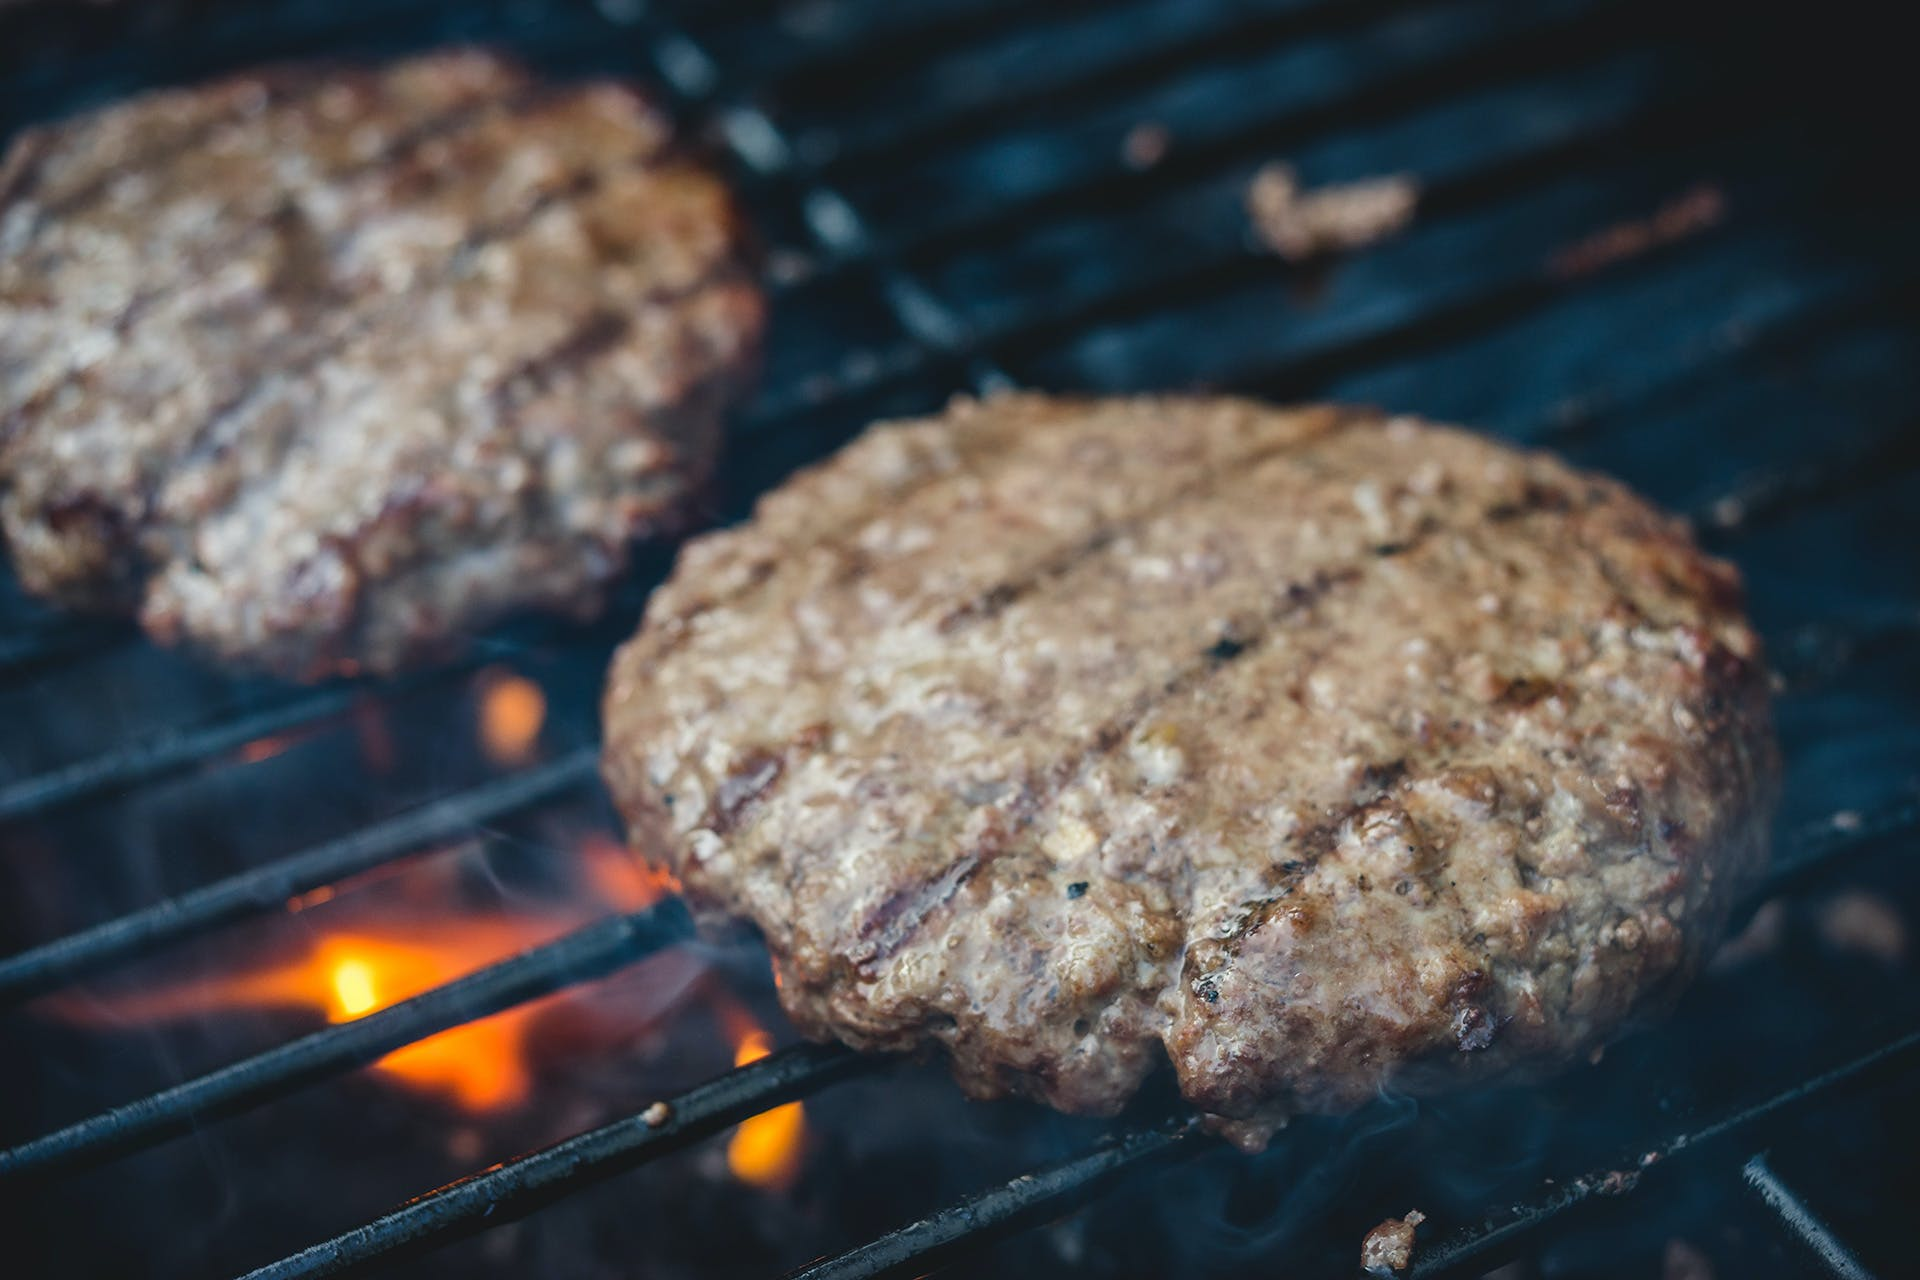 Free stock photo of food, fire, cooking, meat